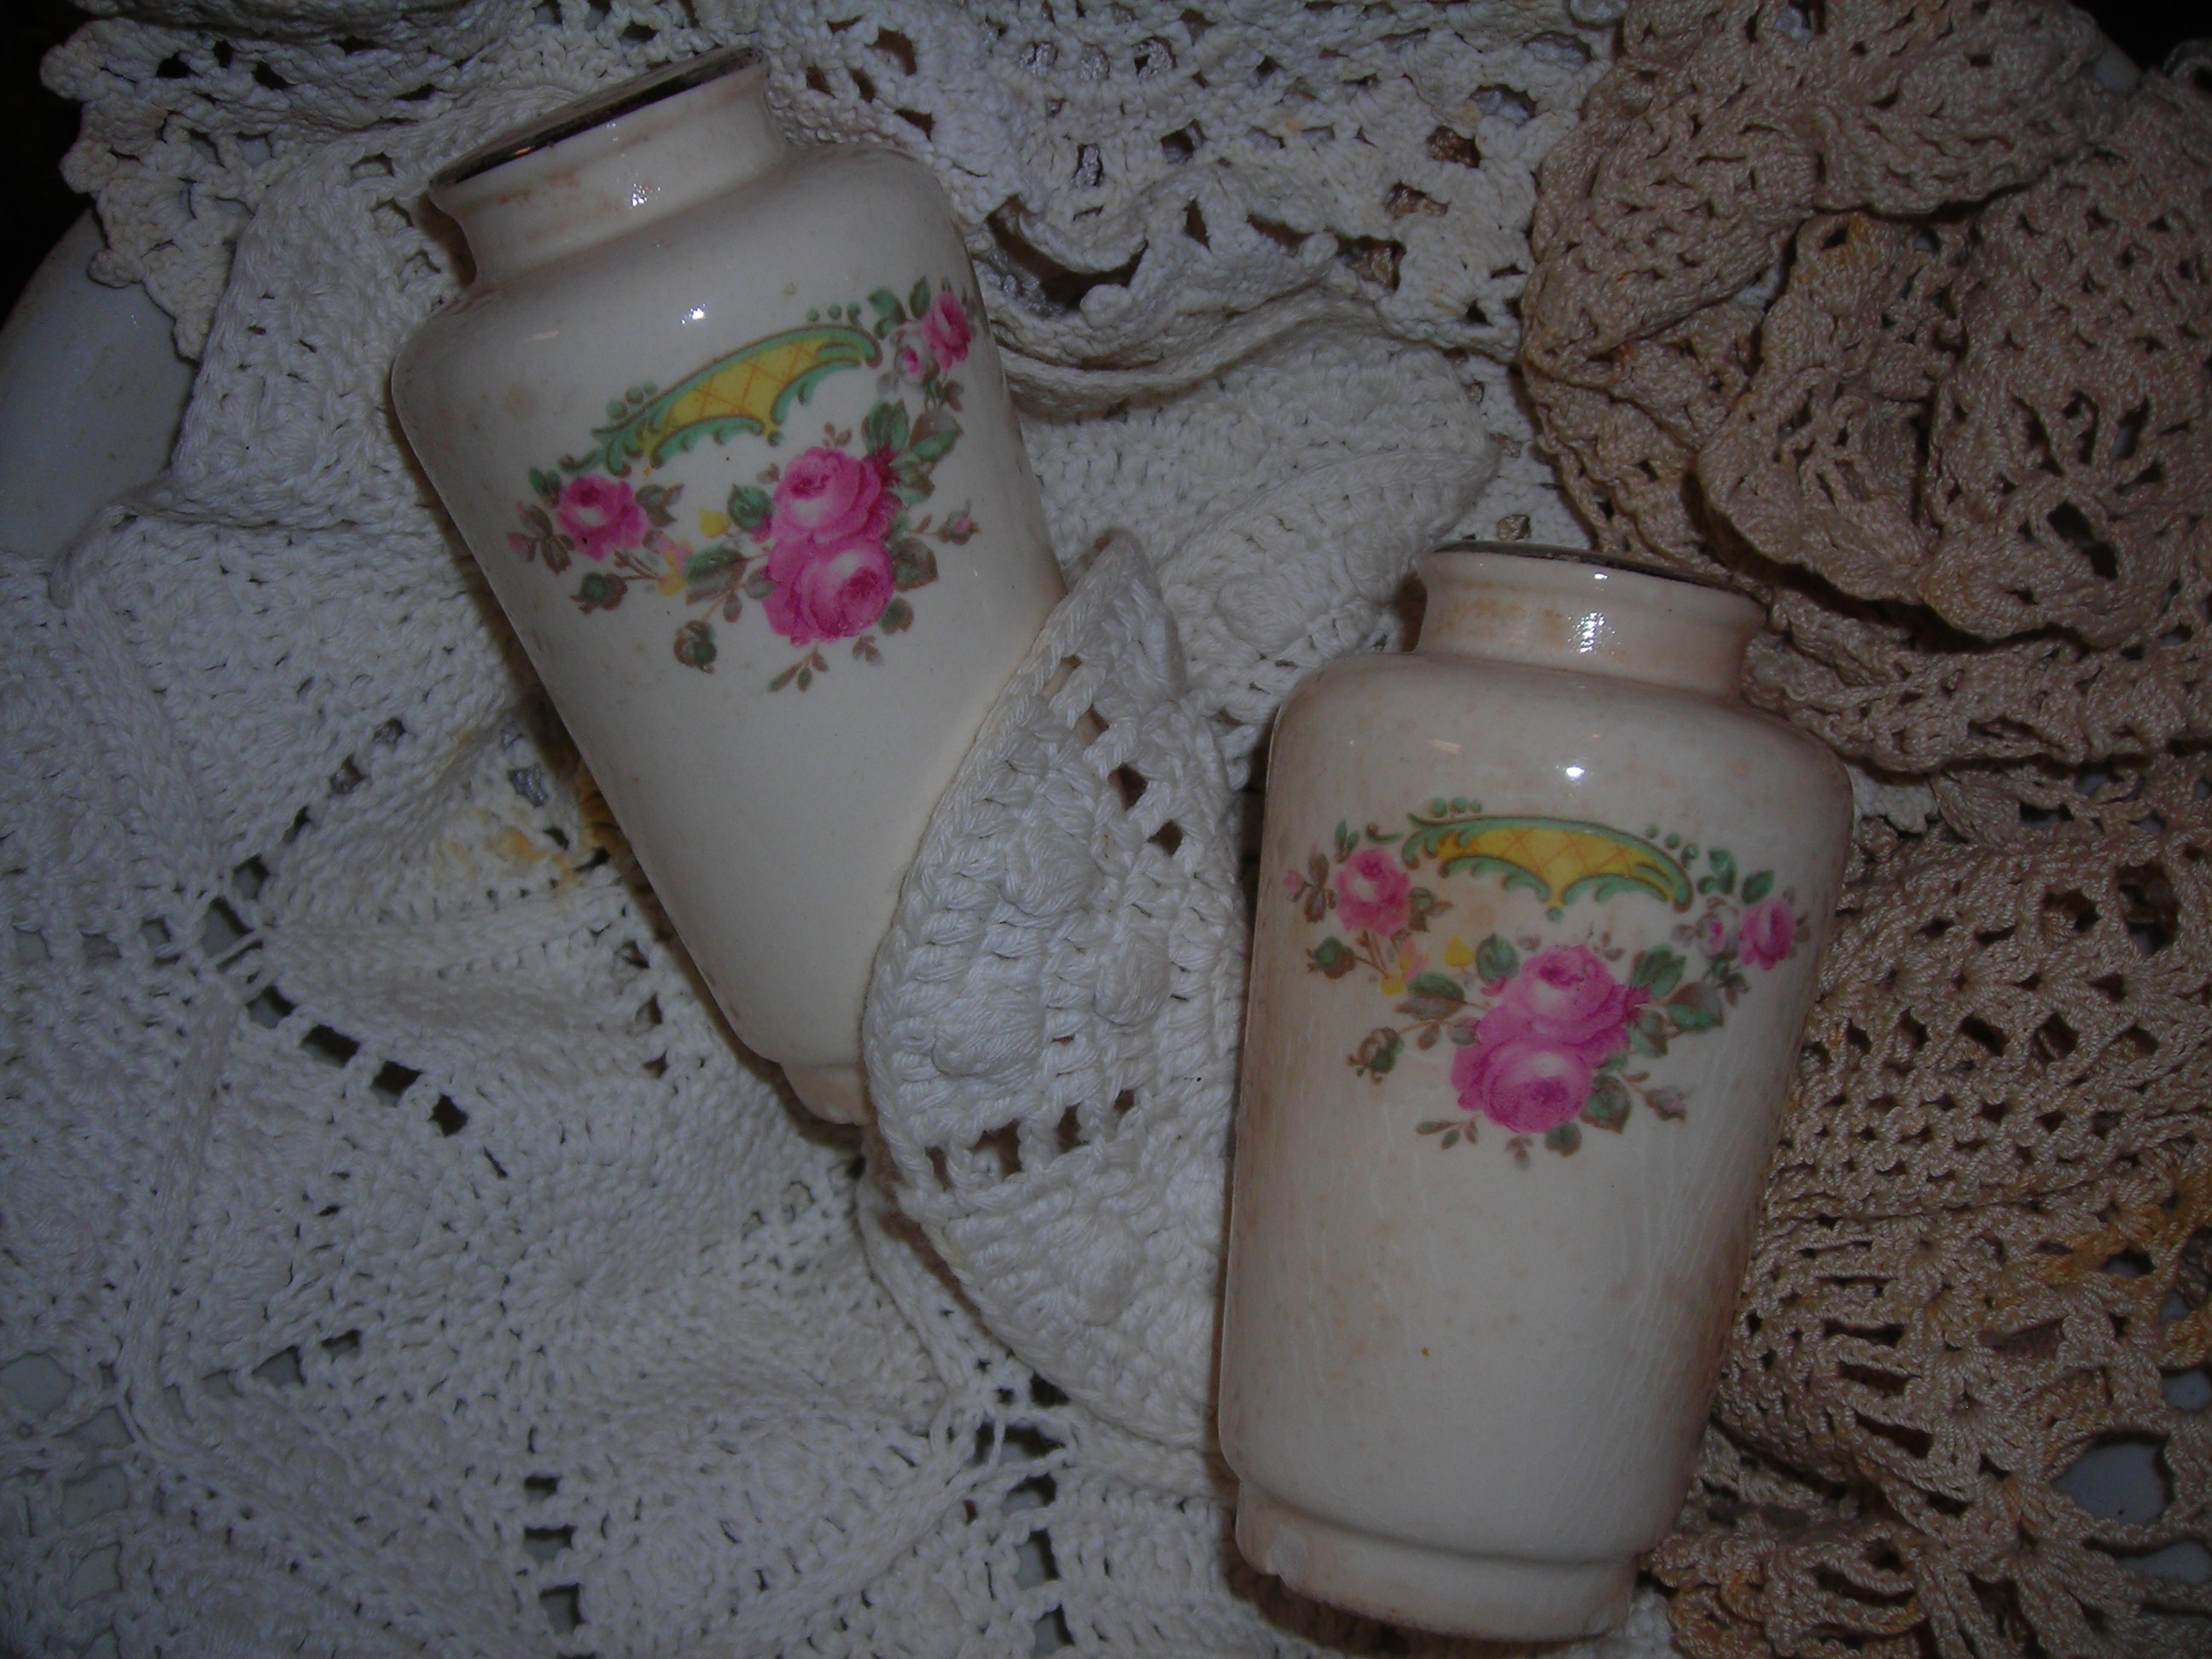 precious, precious vintage s&p shakers with pink roses